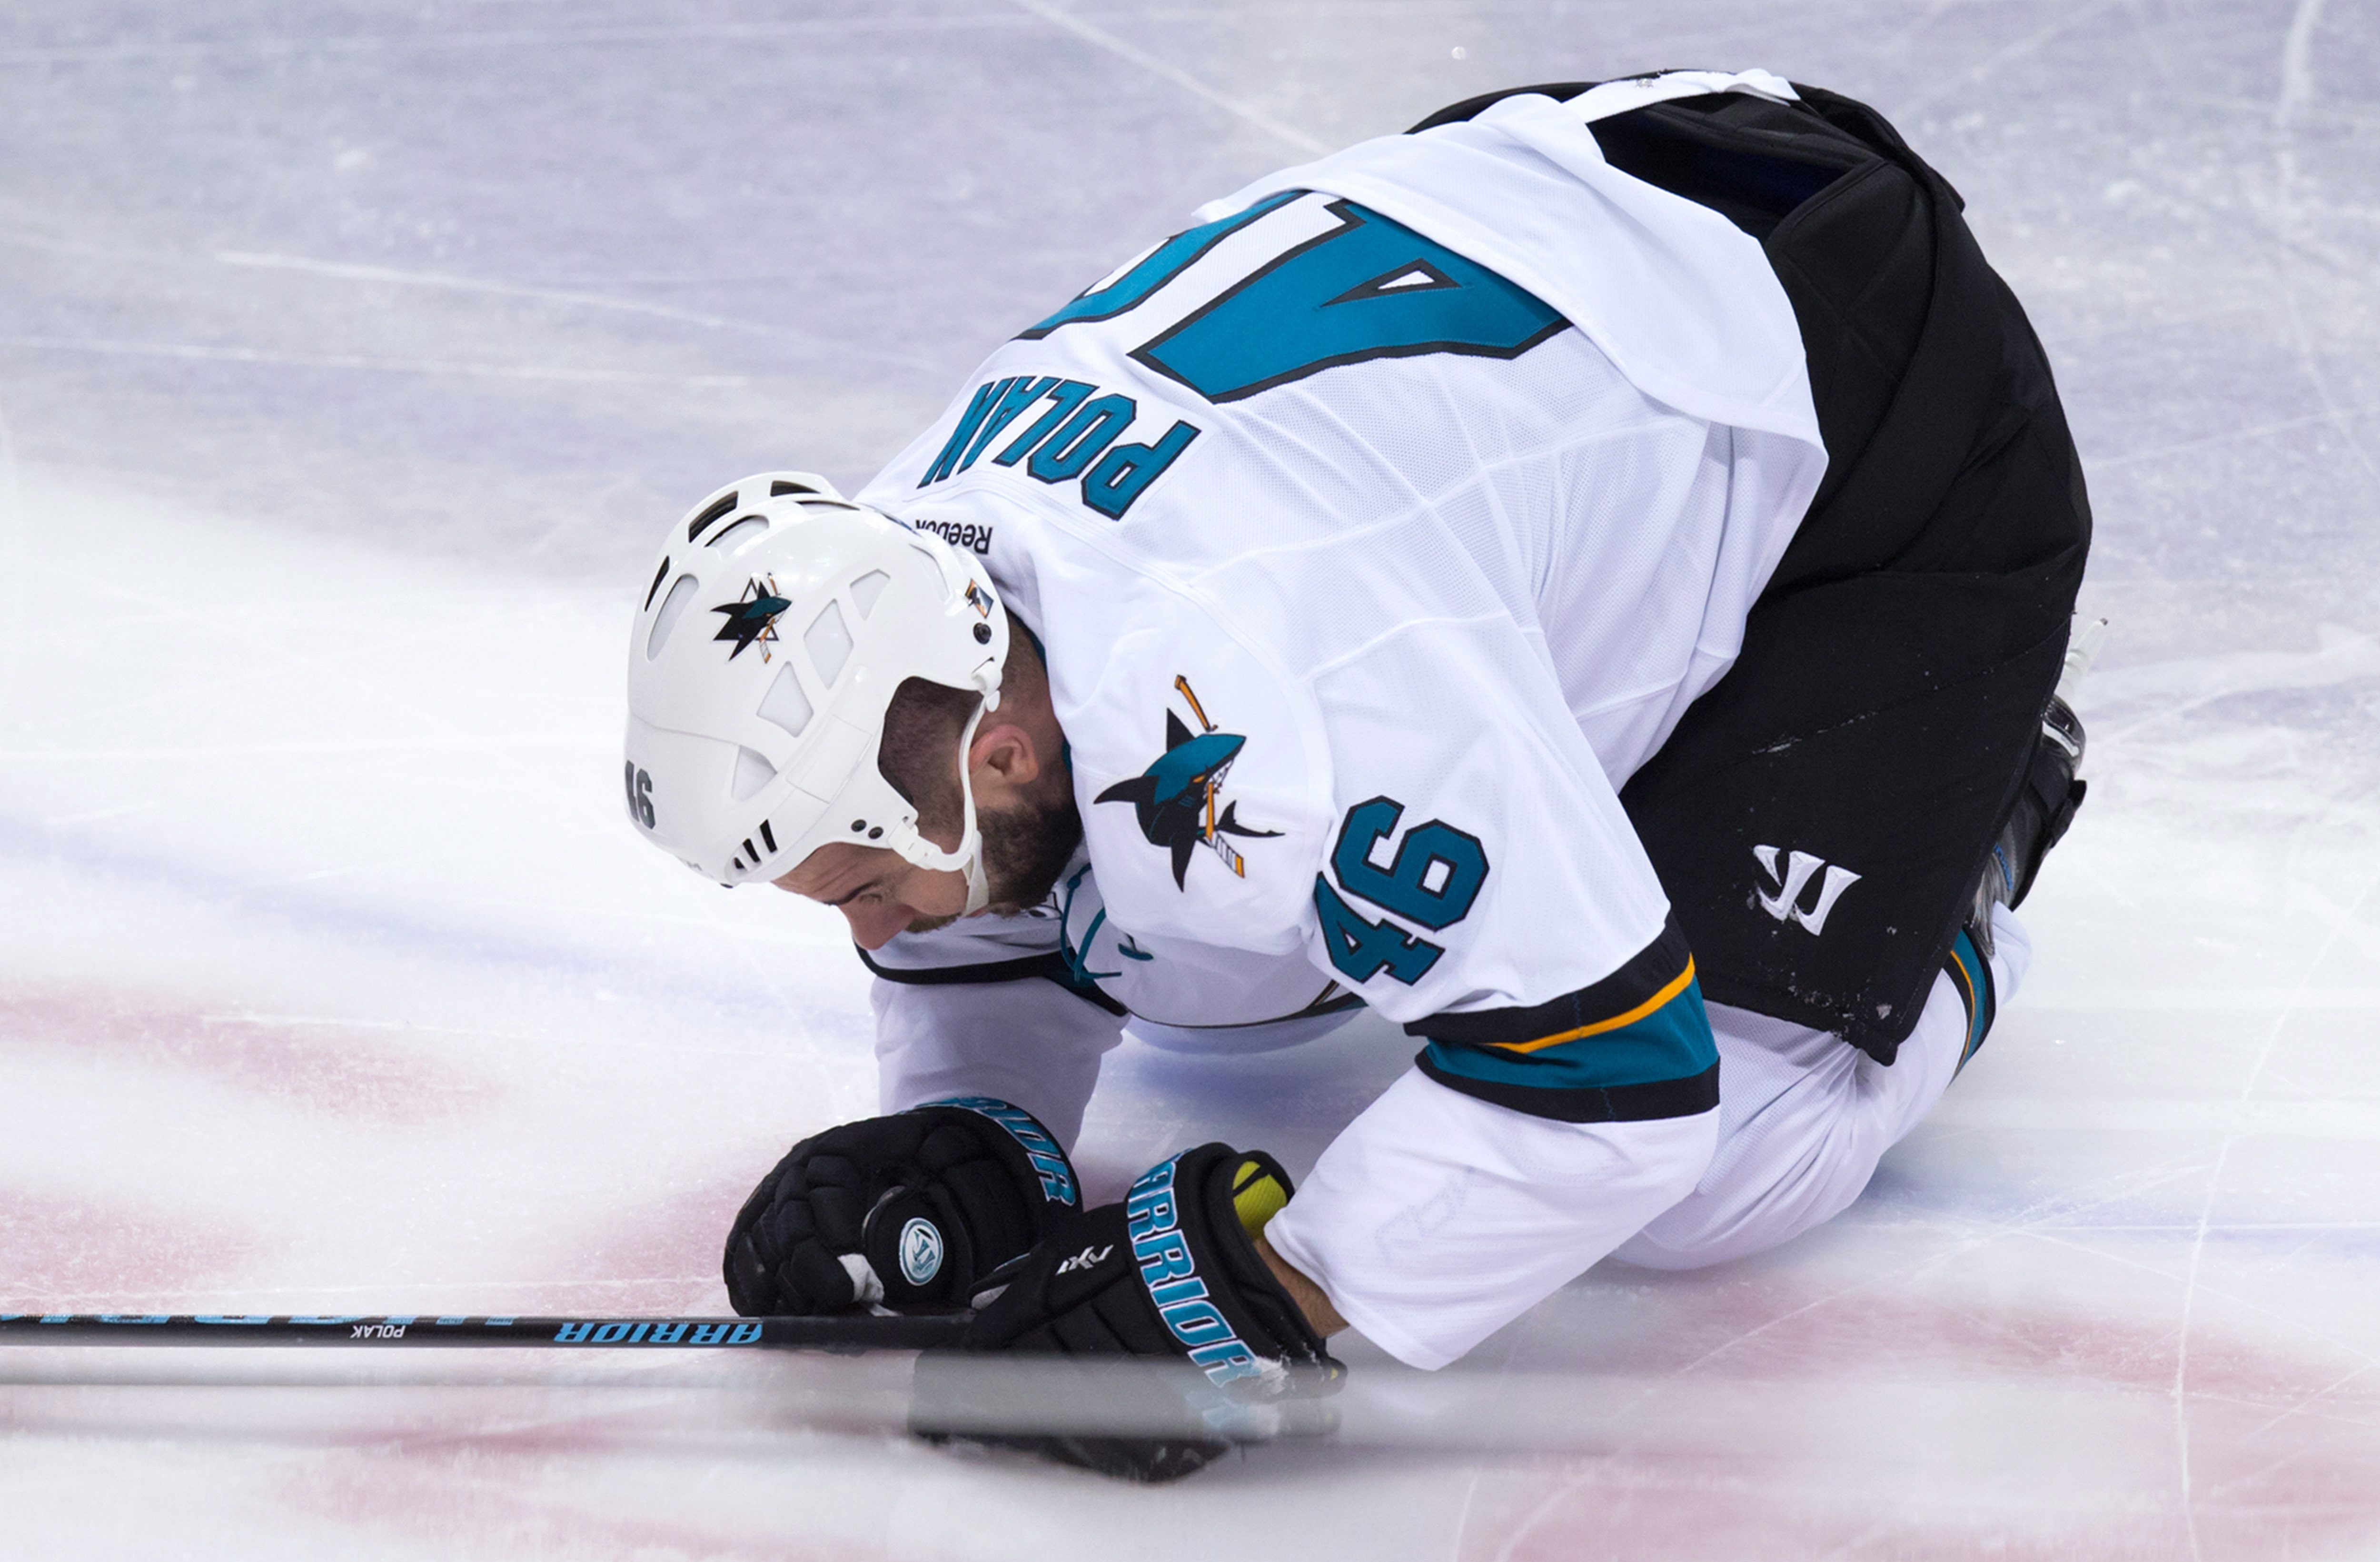 San Jose Sharks' Roman Polak, of the Czech Republic, kneels on the ice after being hit by Vancouver Canucks' Jake Virtanen during the second period of an NHL hockey game Tuesday, March 29, 2016, in Vancouver, British Columbia. (Darryl Dyck/The Canadian Pr